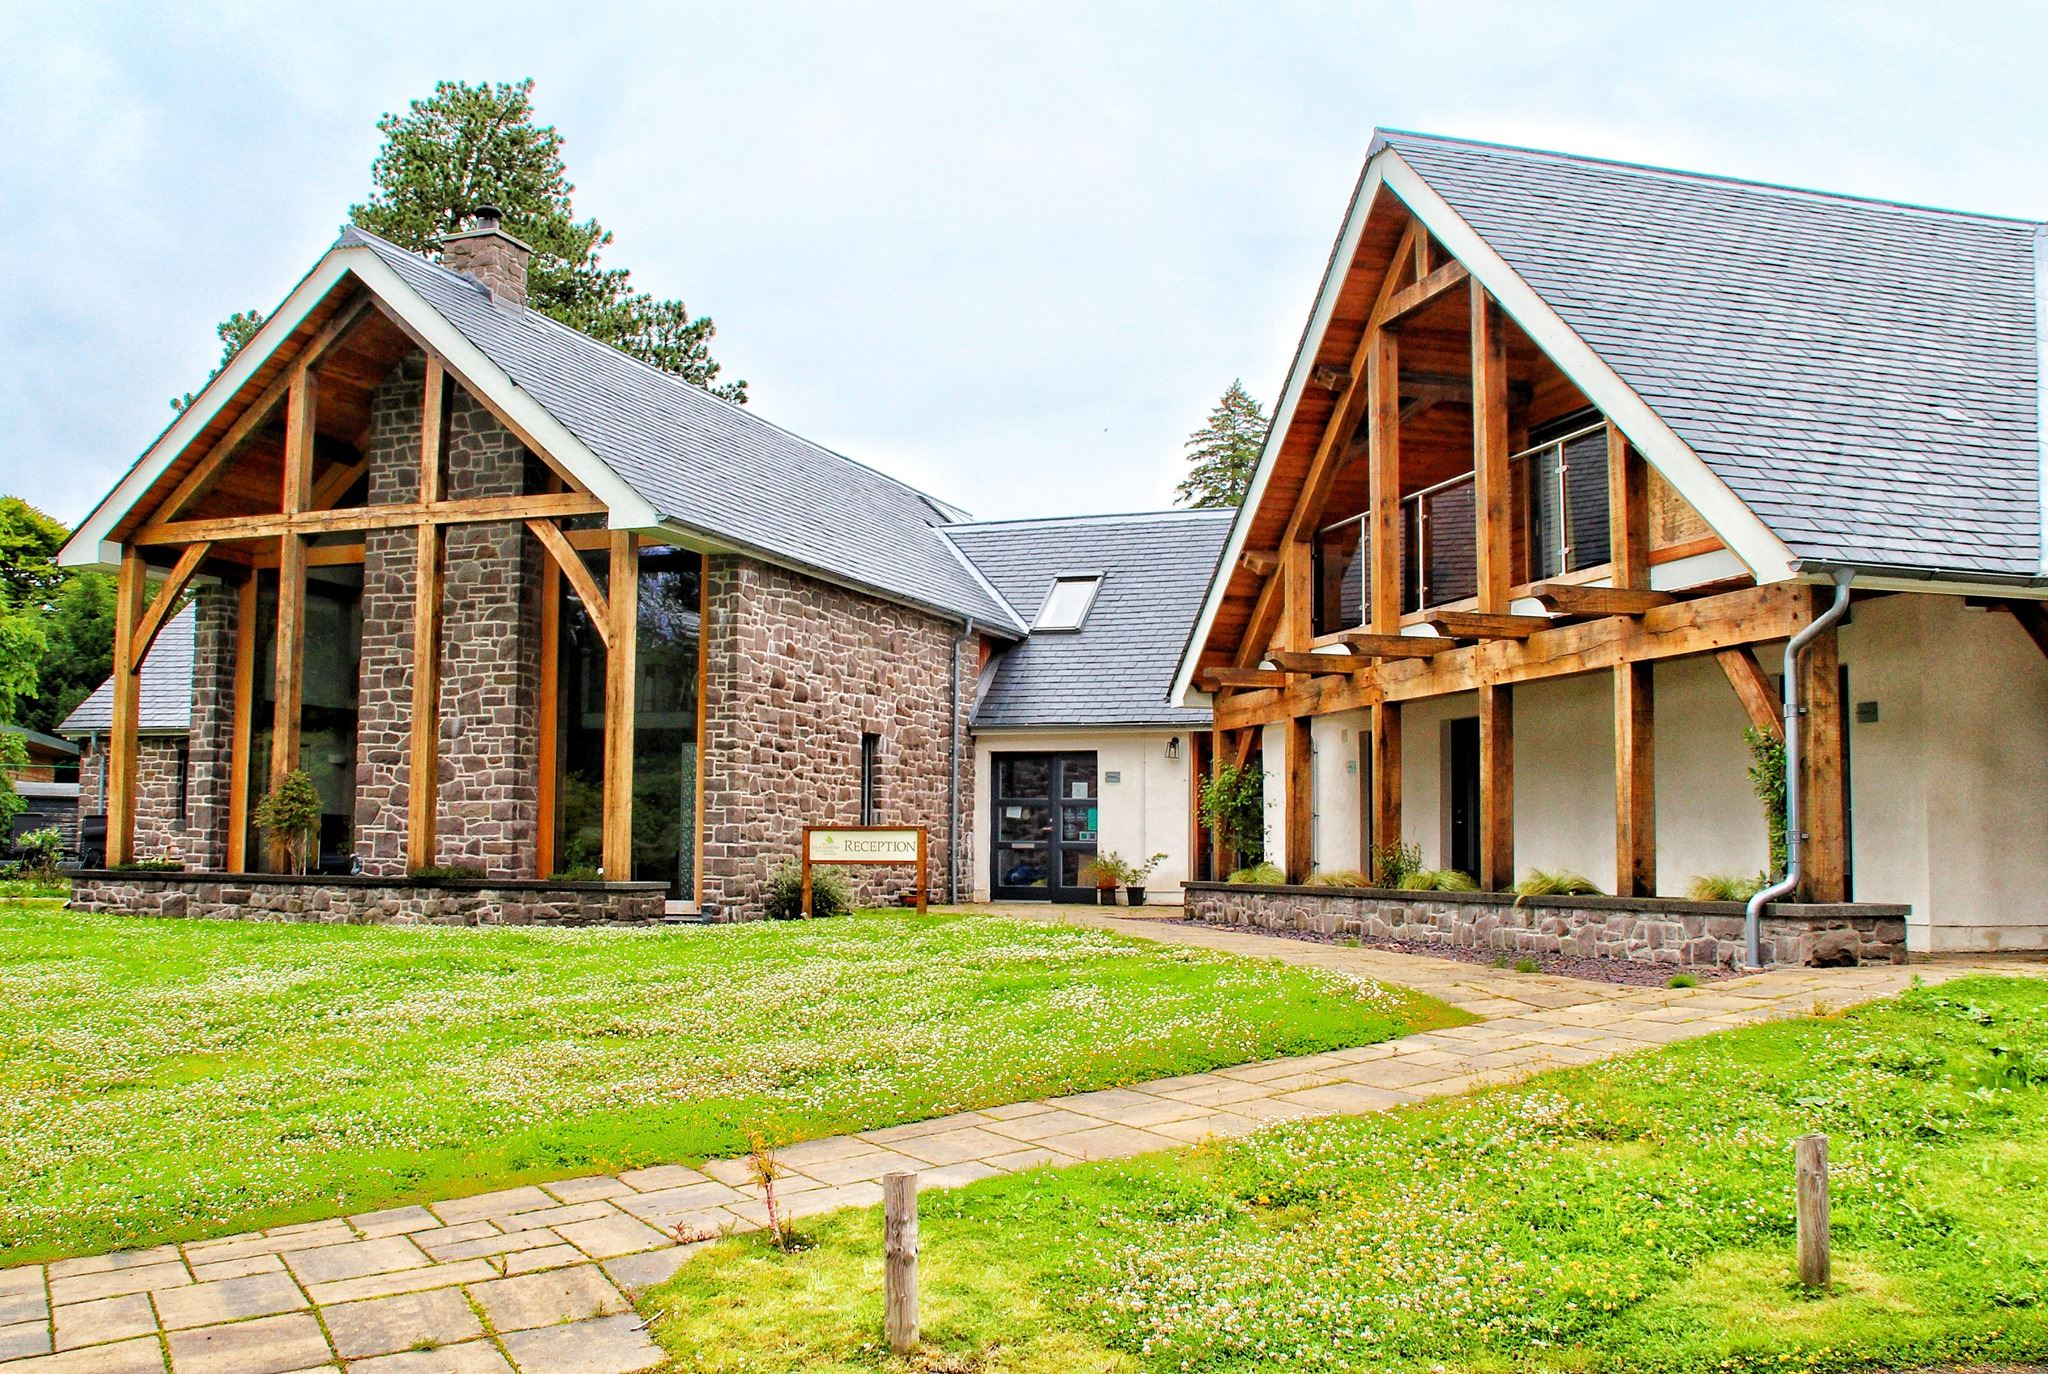 The Loch Lomond GuestHouse & Lodges